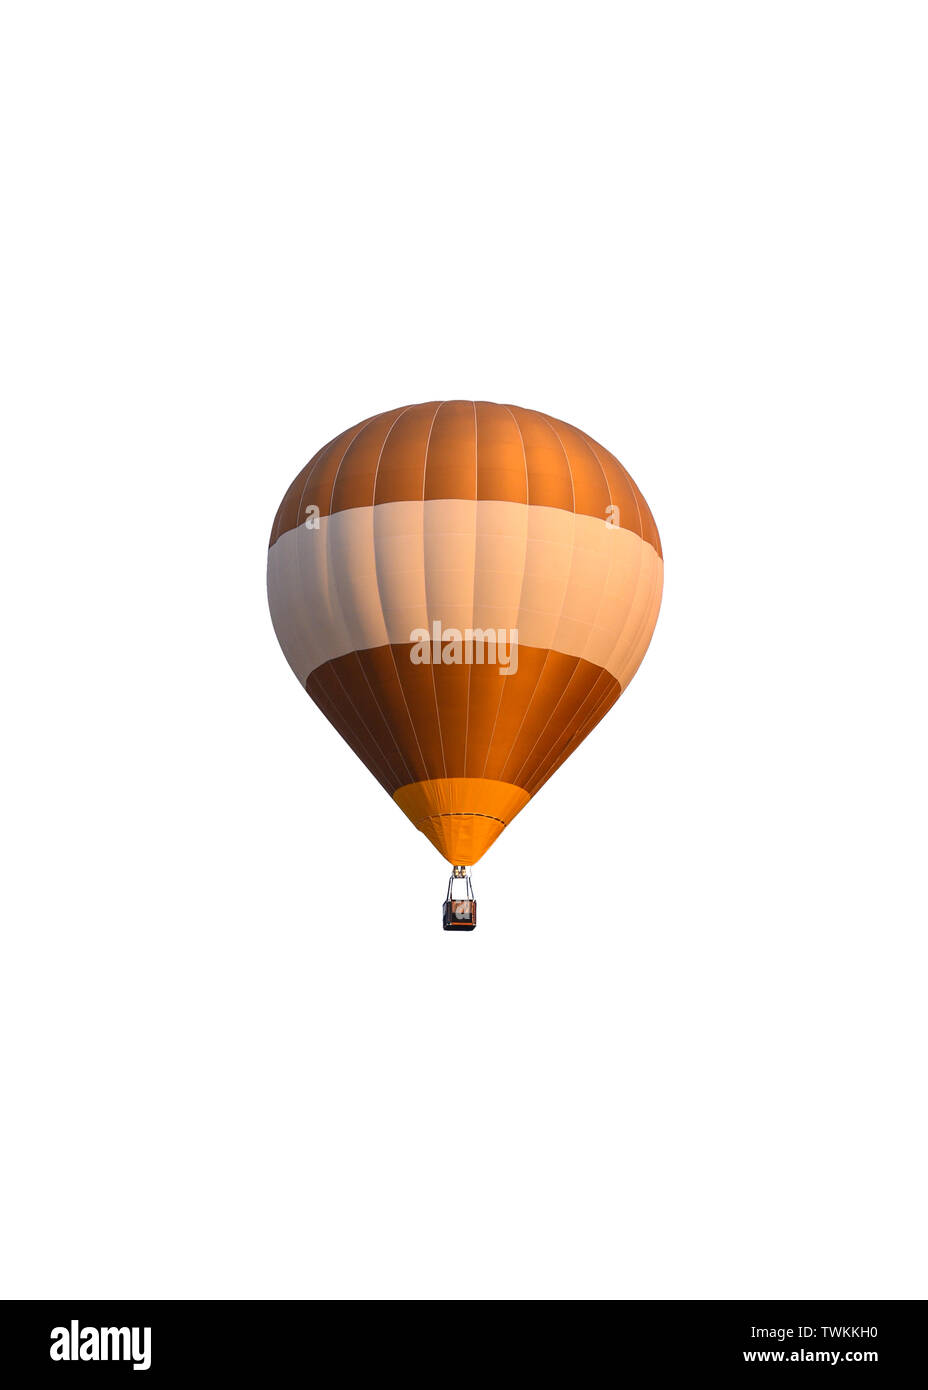 Golden white hot air balloon with basket. isolated on white background - Stock Image